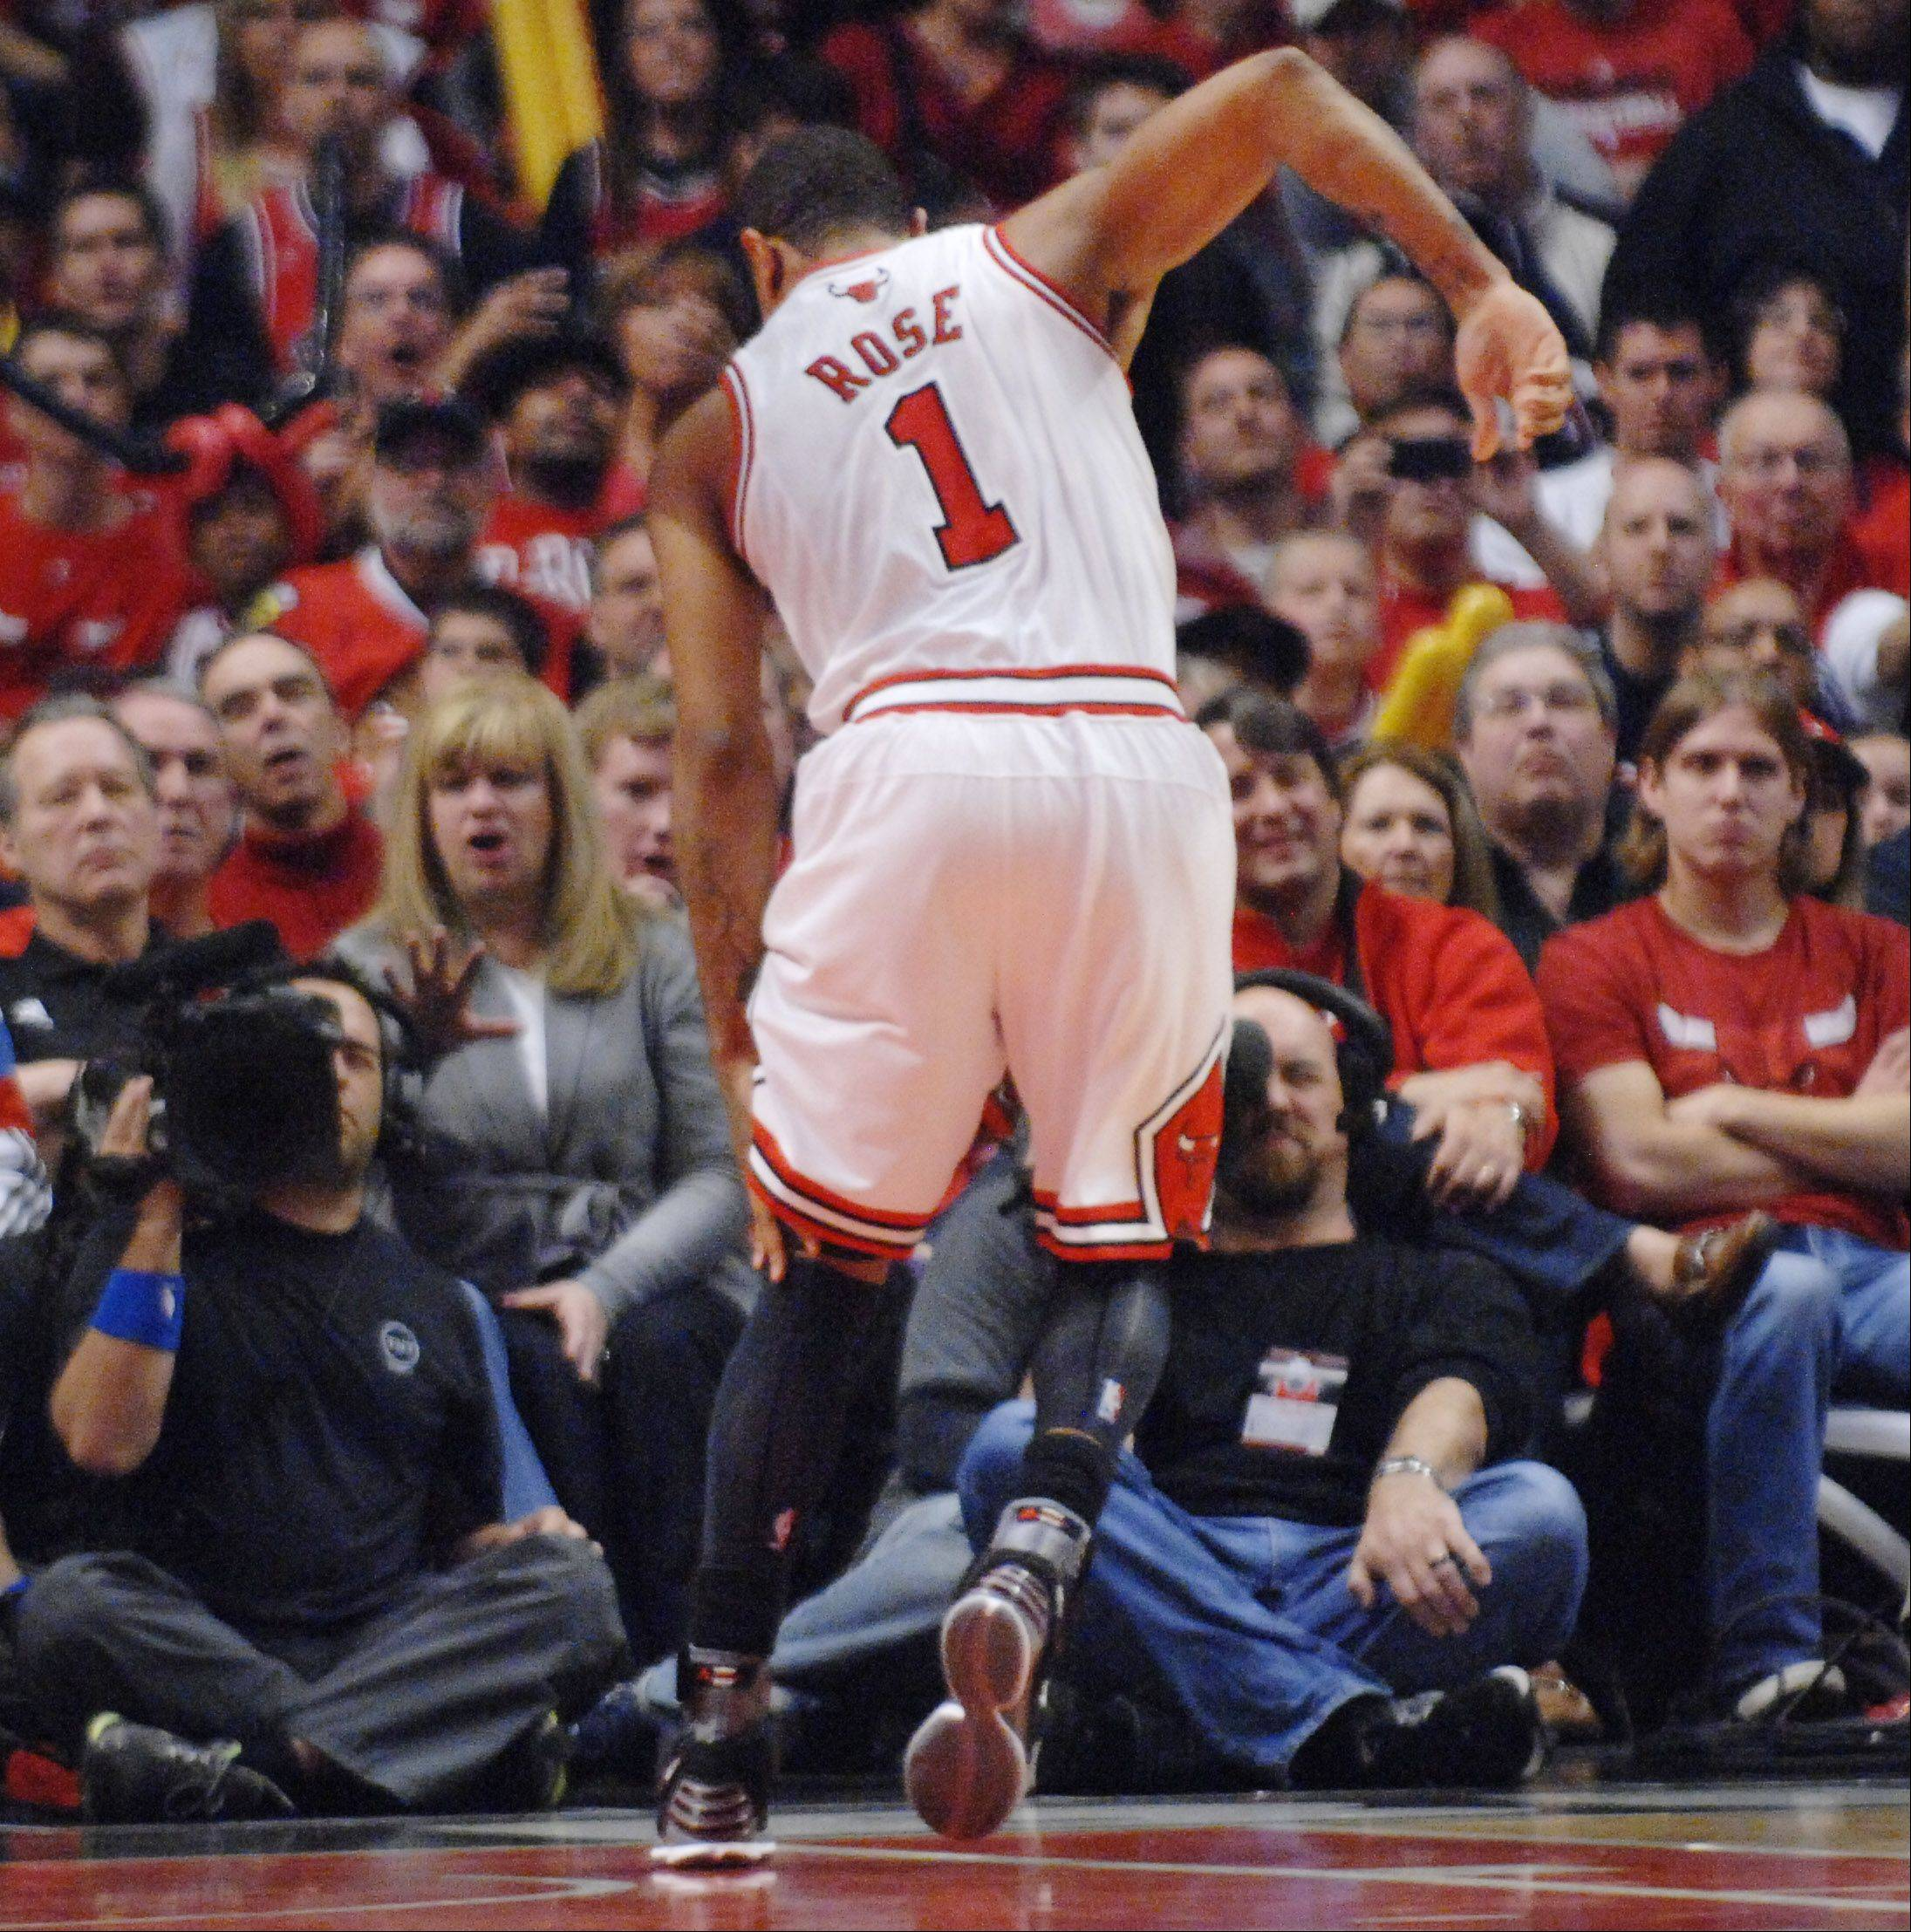 Chicago Bulls point guard Derrick Rose limps to the baseline after injuring his leg in the fourth quarter.